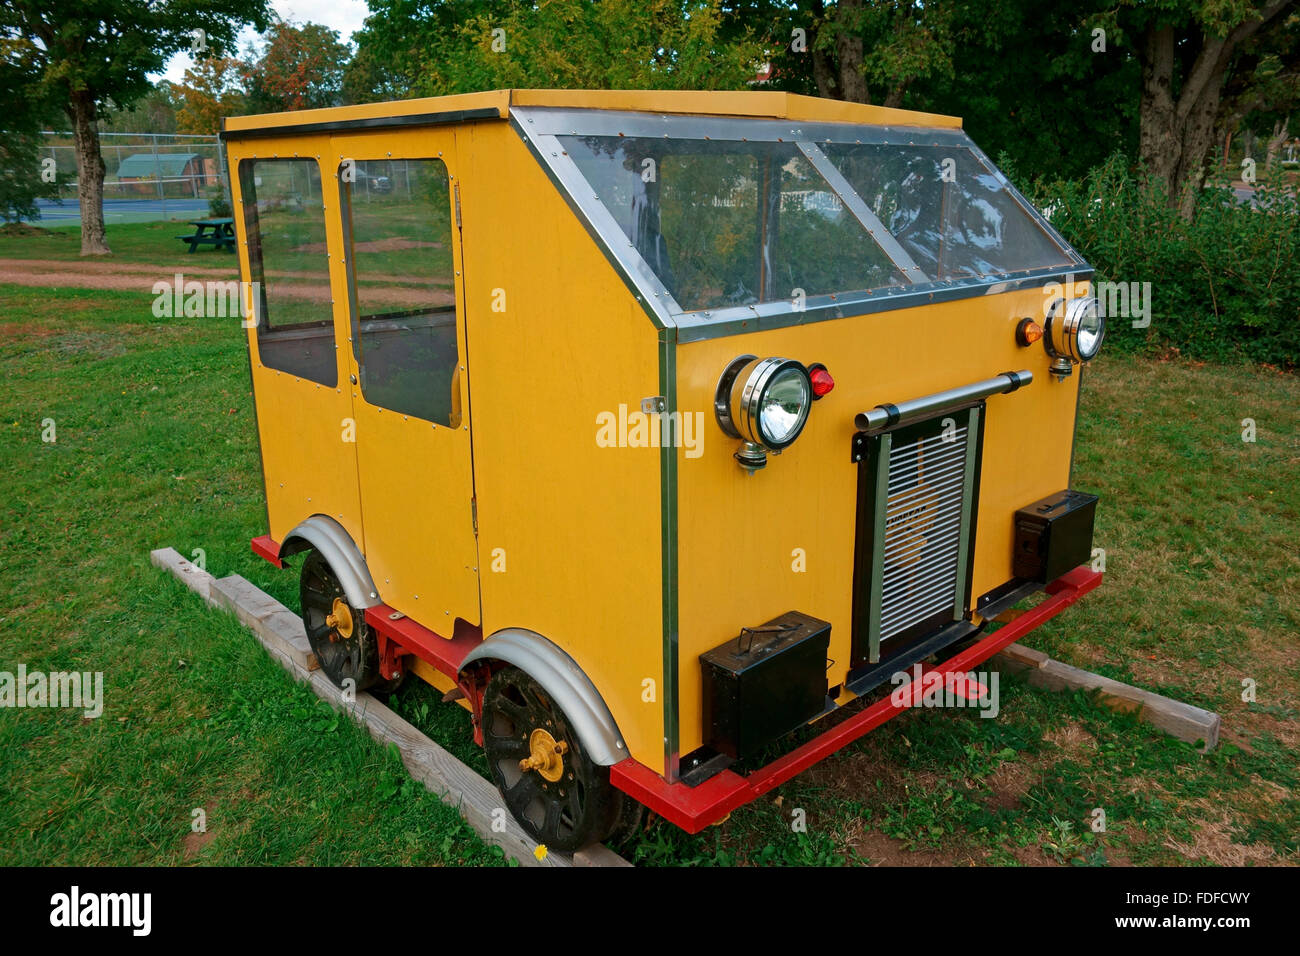 Sylvester 21 light weight section truck for work on railroads - Stock Image